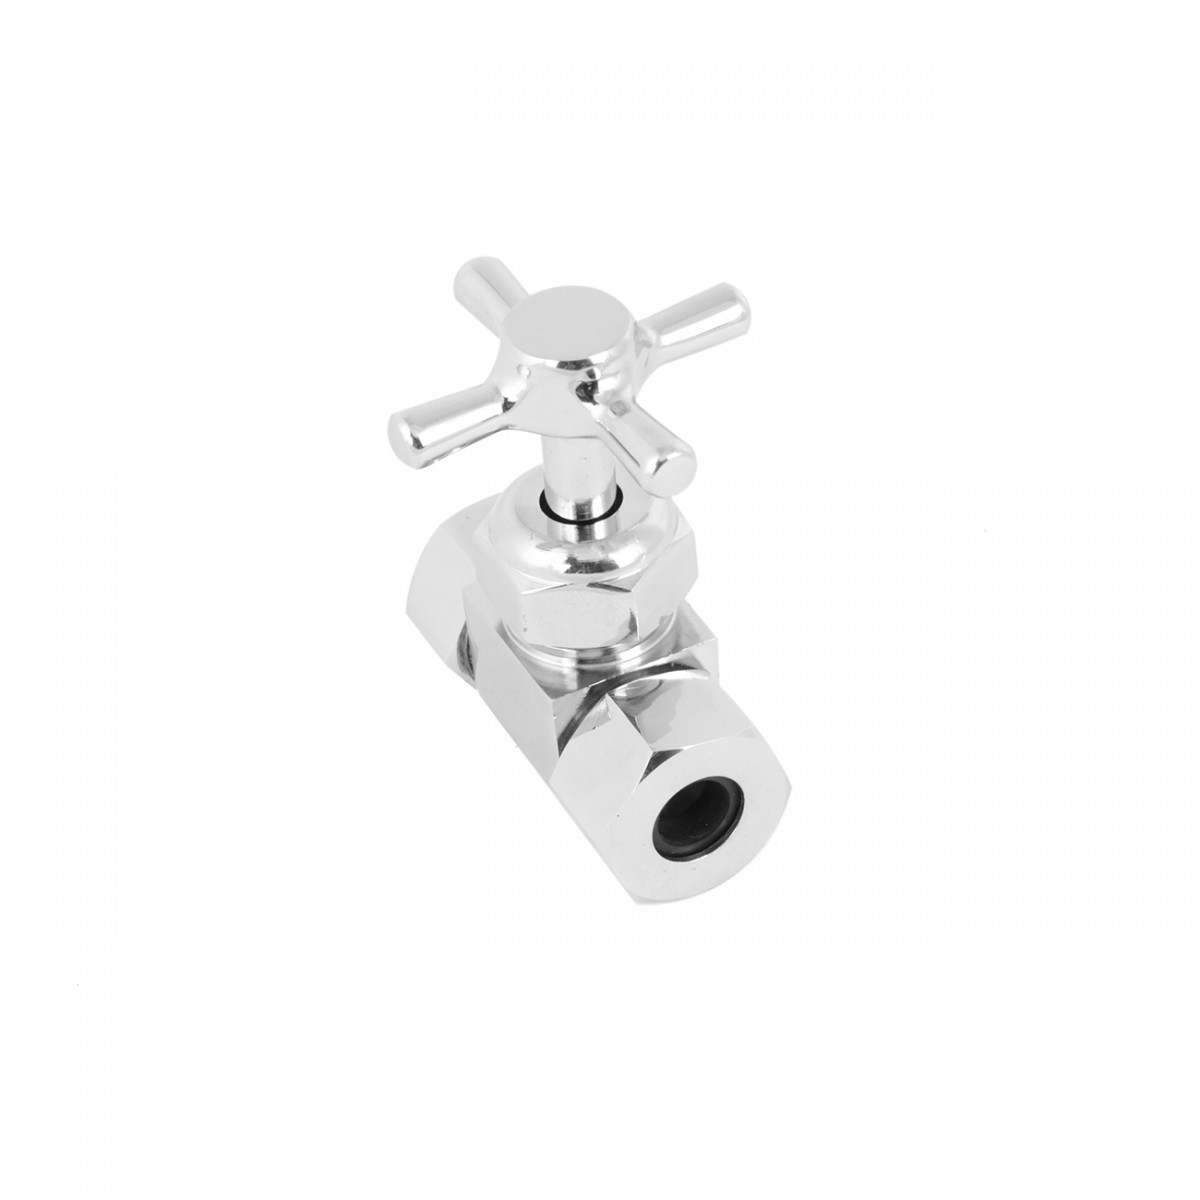 ChromePlated Tub Supply Lines Double Shutoff Valves Offset 2 12 Flange Tub Supply Lines Chrome Tub Supply Lines bathtub parts